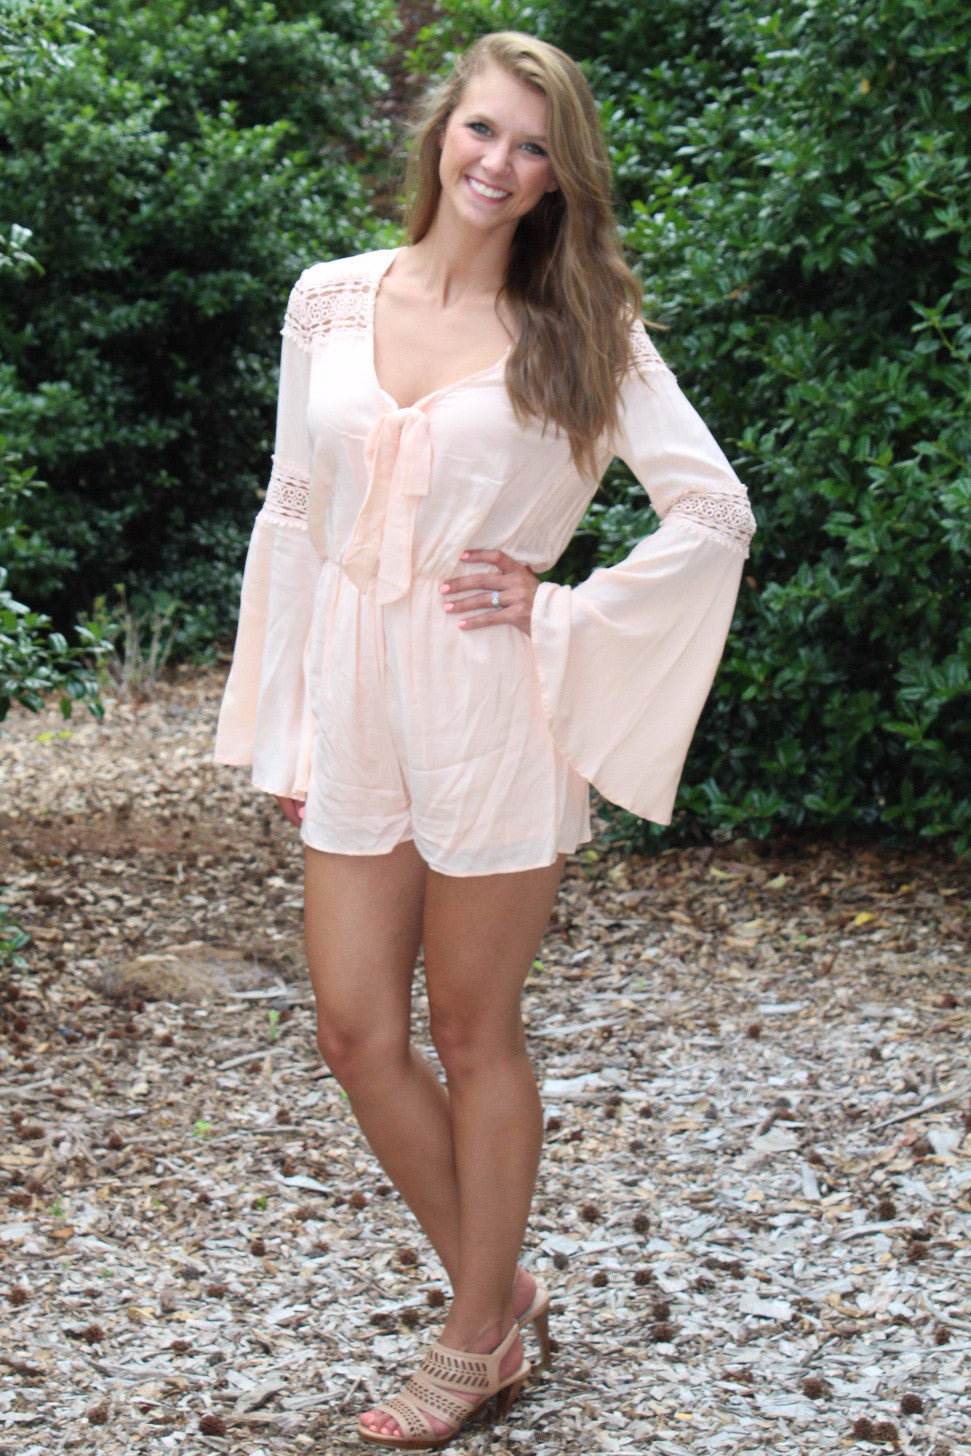 a4e8b2a9a61 Long Sleeve Open-Back Romper With Lace Detail - Ambees Boutique